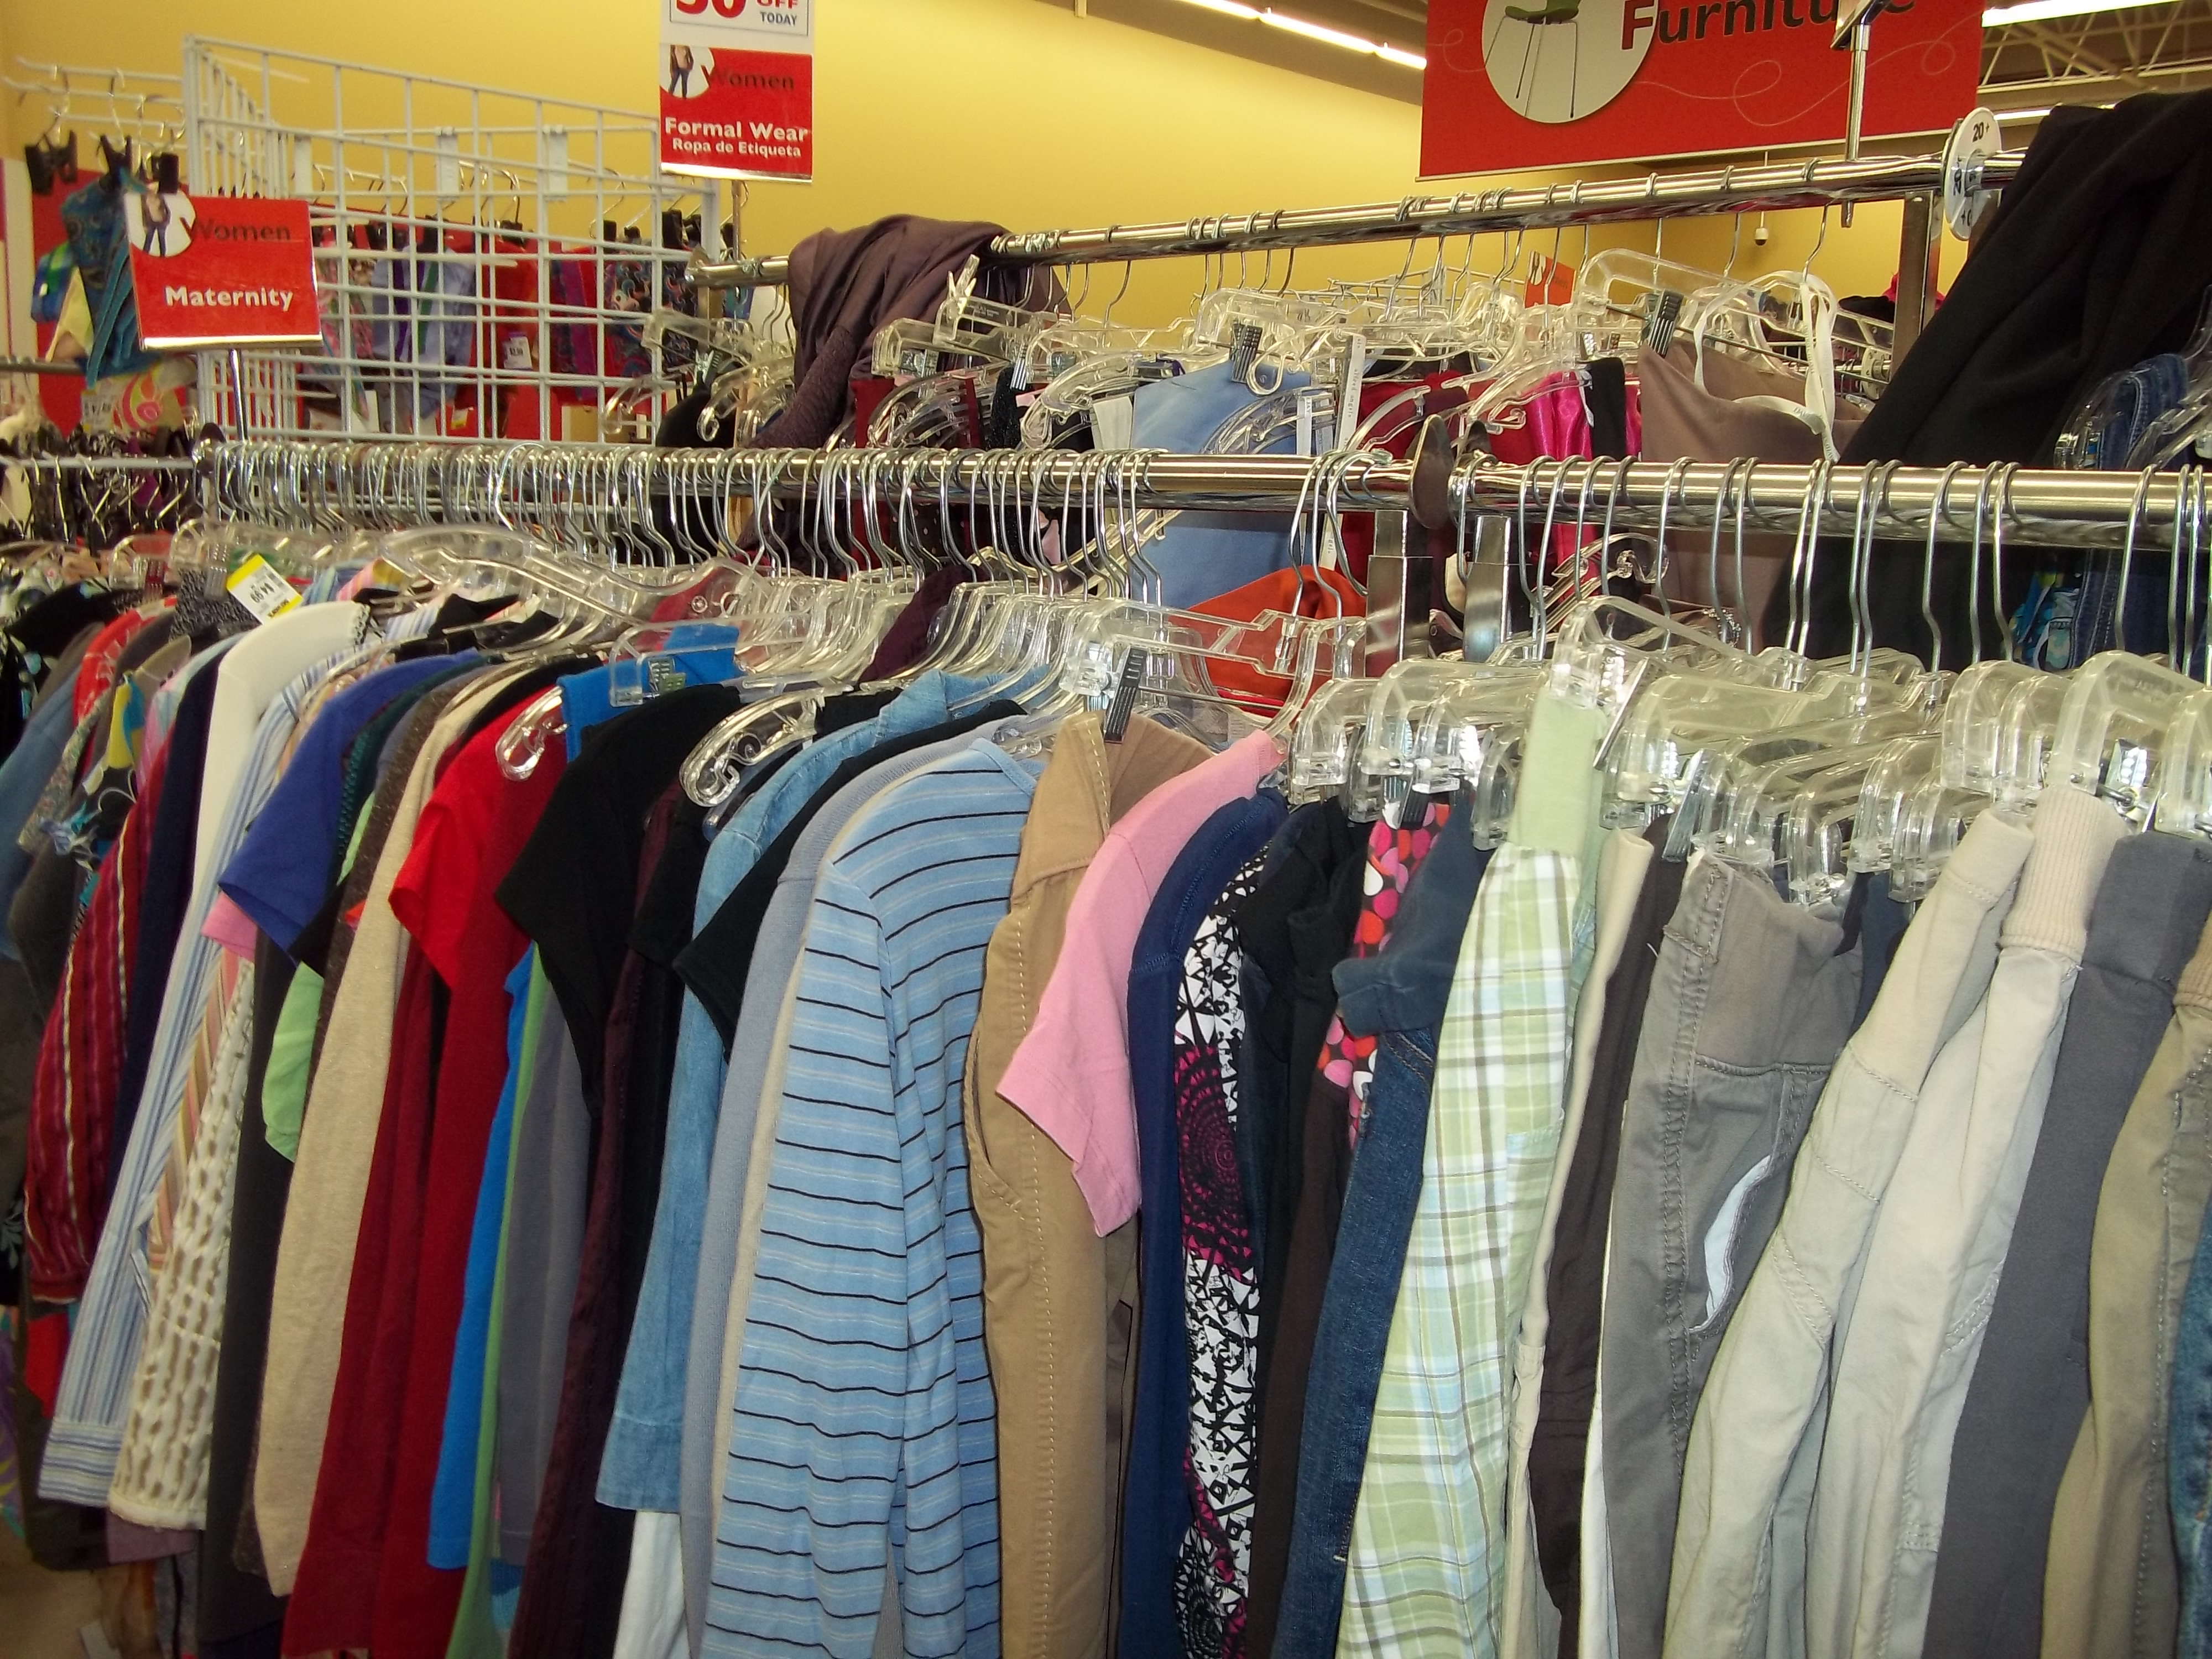 Stores with maternity clothes